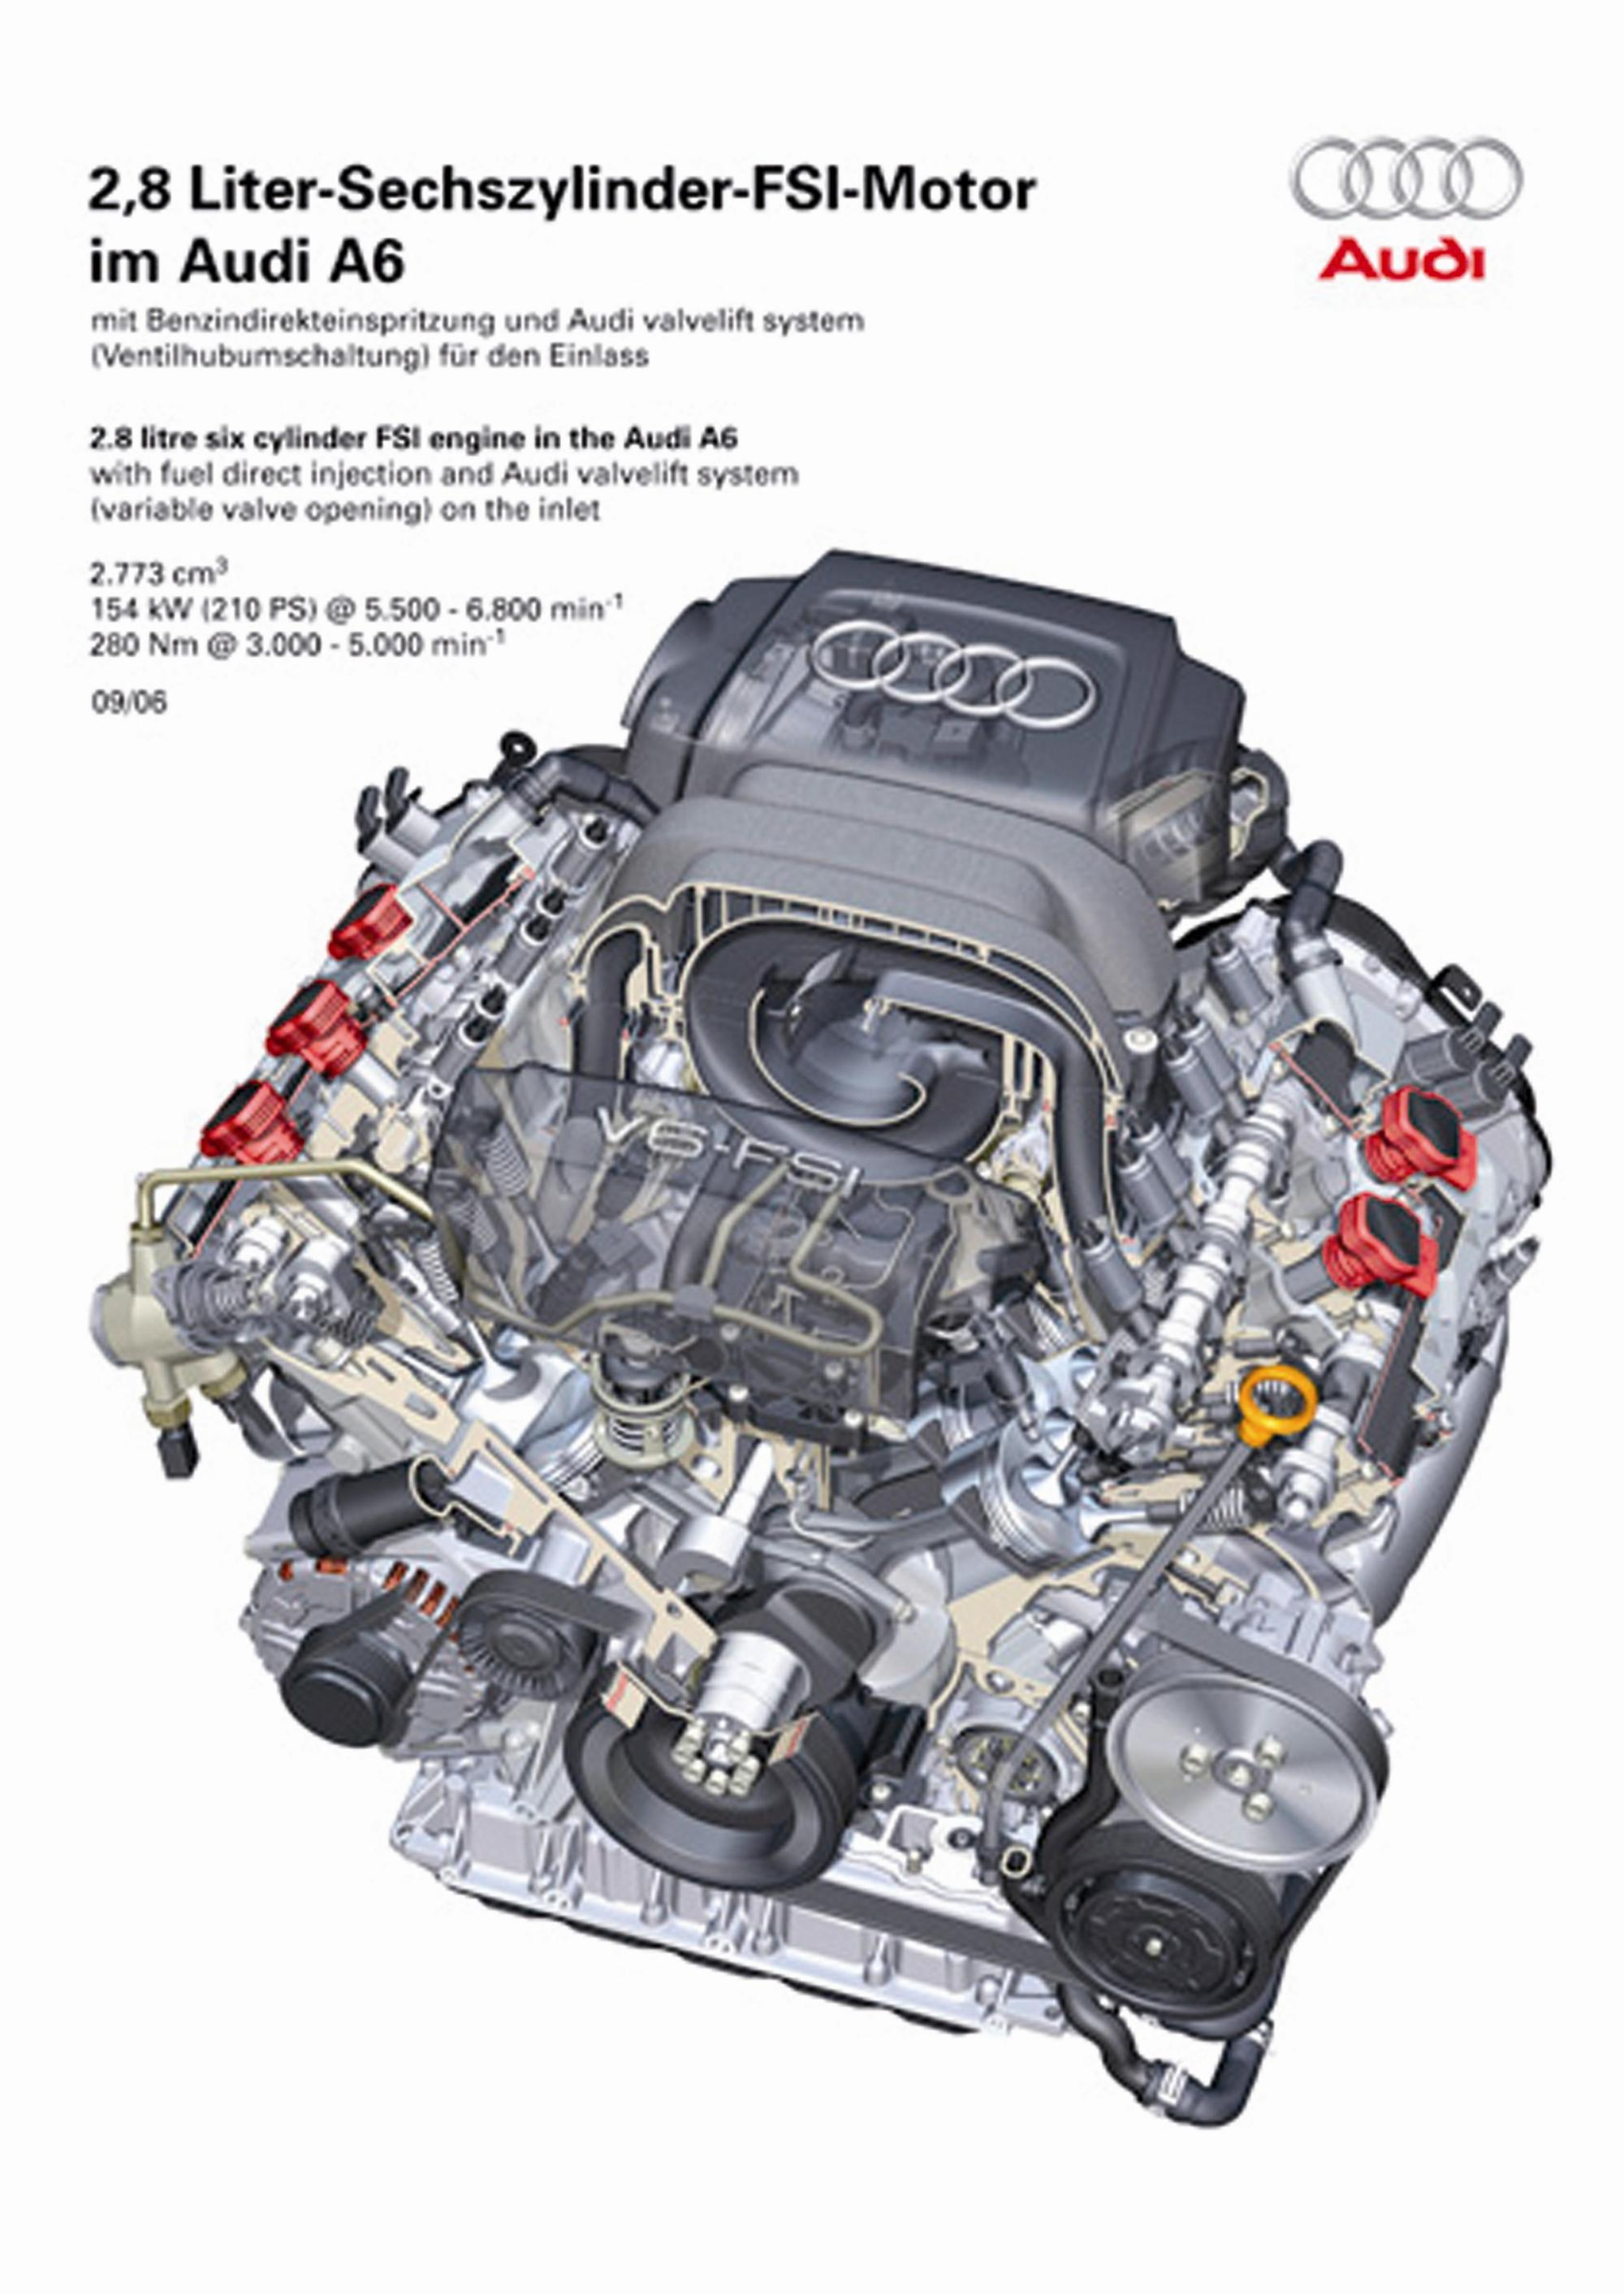 hight resolution of 2005 a6 4 2 engine diagram wiring diagram week 2000 audi a6 v8 engine diagram